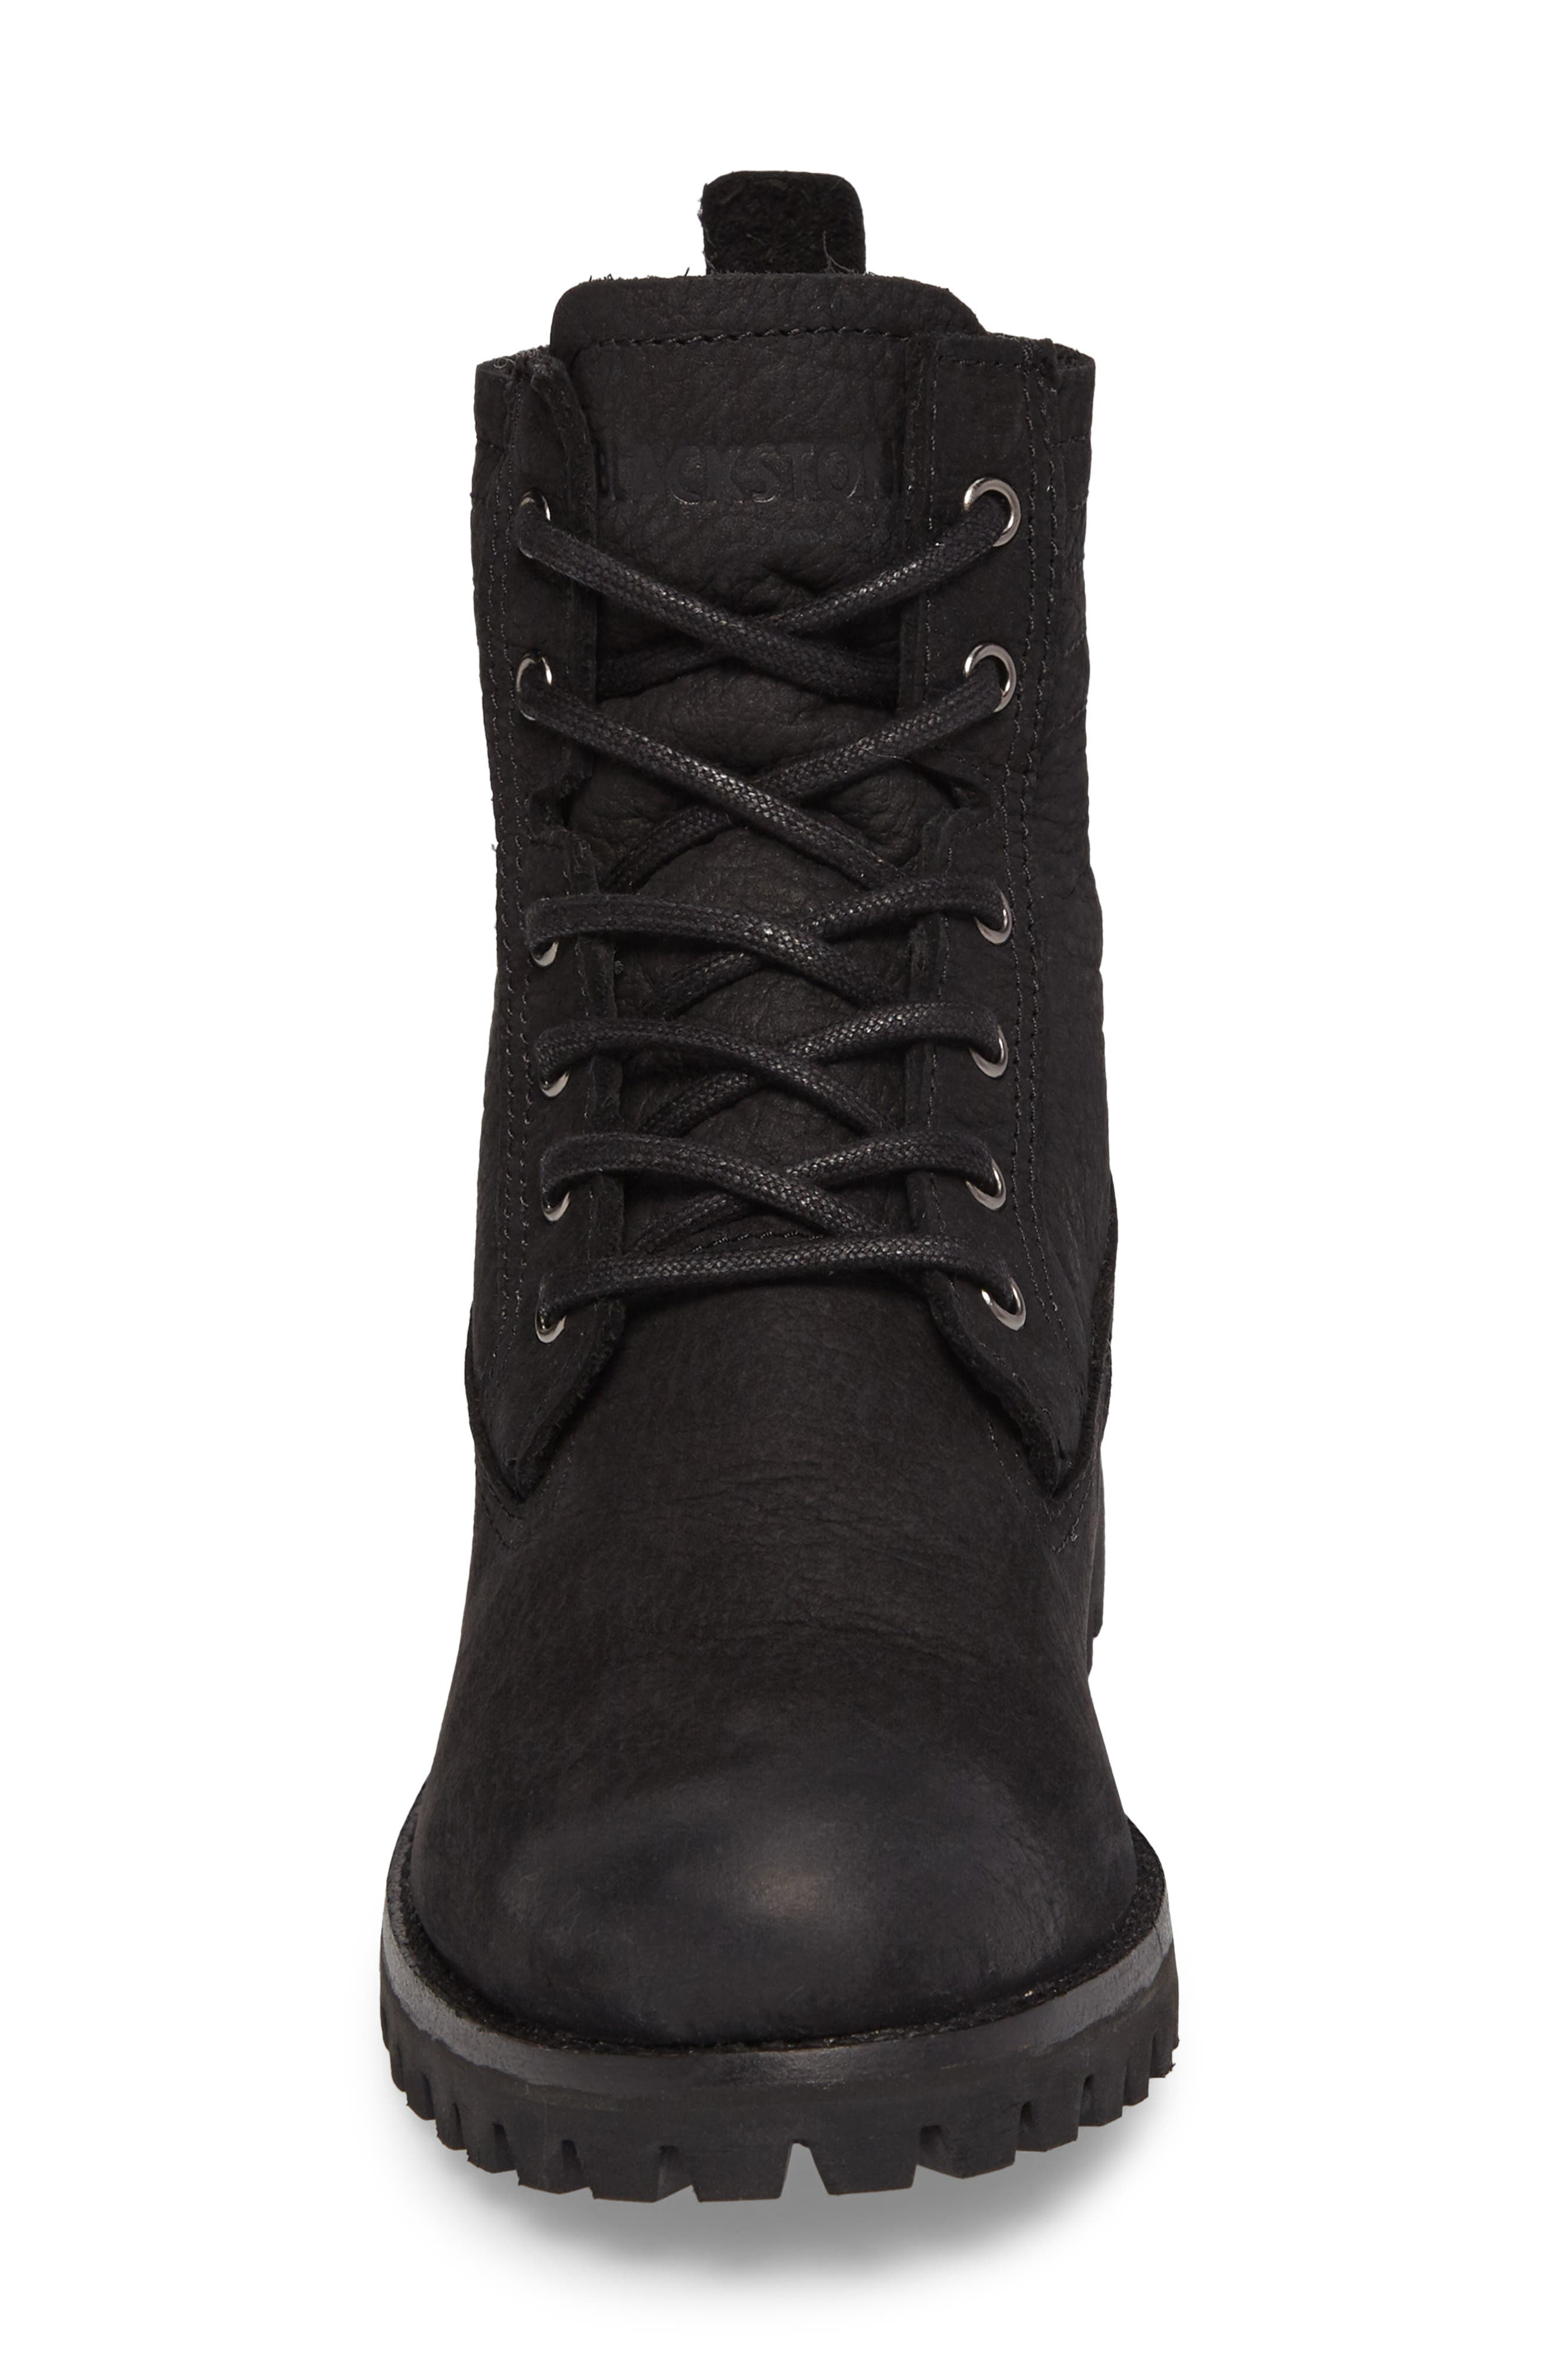 OL22 Lace-Up Boot with Genuine Shearling Lining,                             Alternate thumbnail 4, color,                             BLACK LEATHER